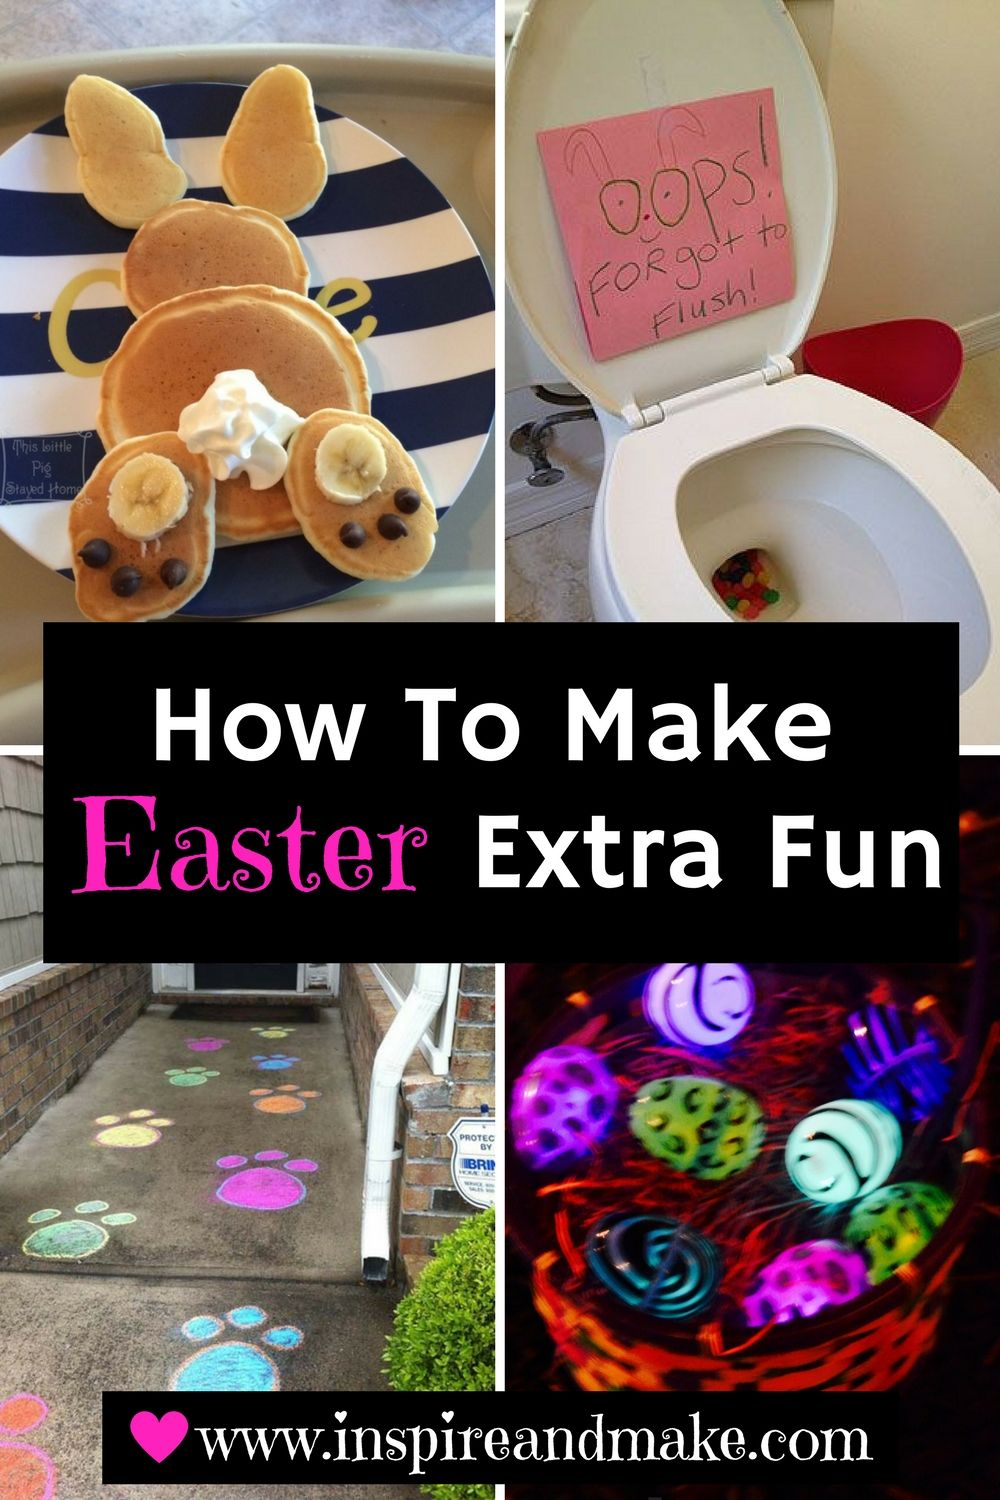 How To Make Easter Fun For Kids | Get Your Holiday On